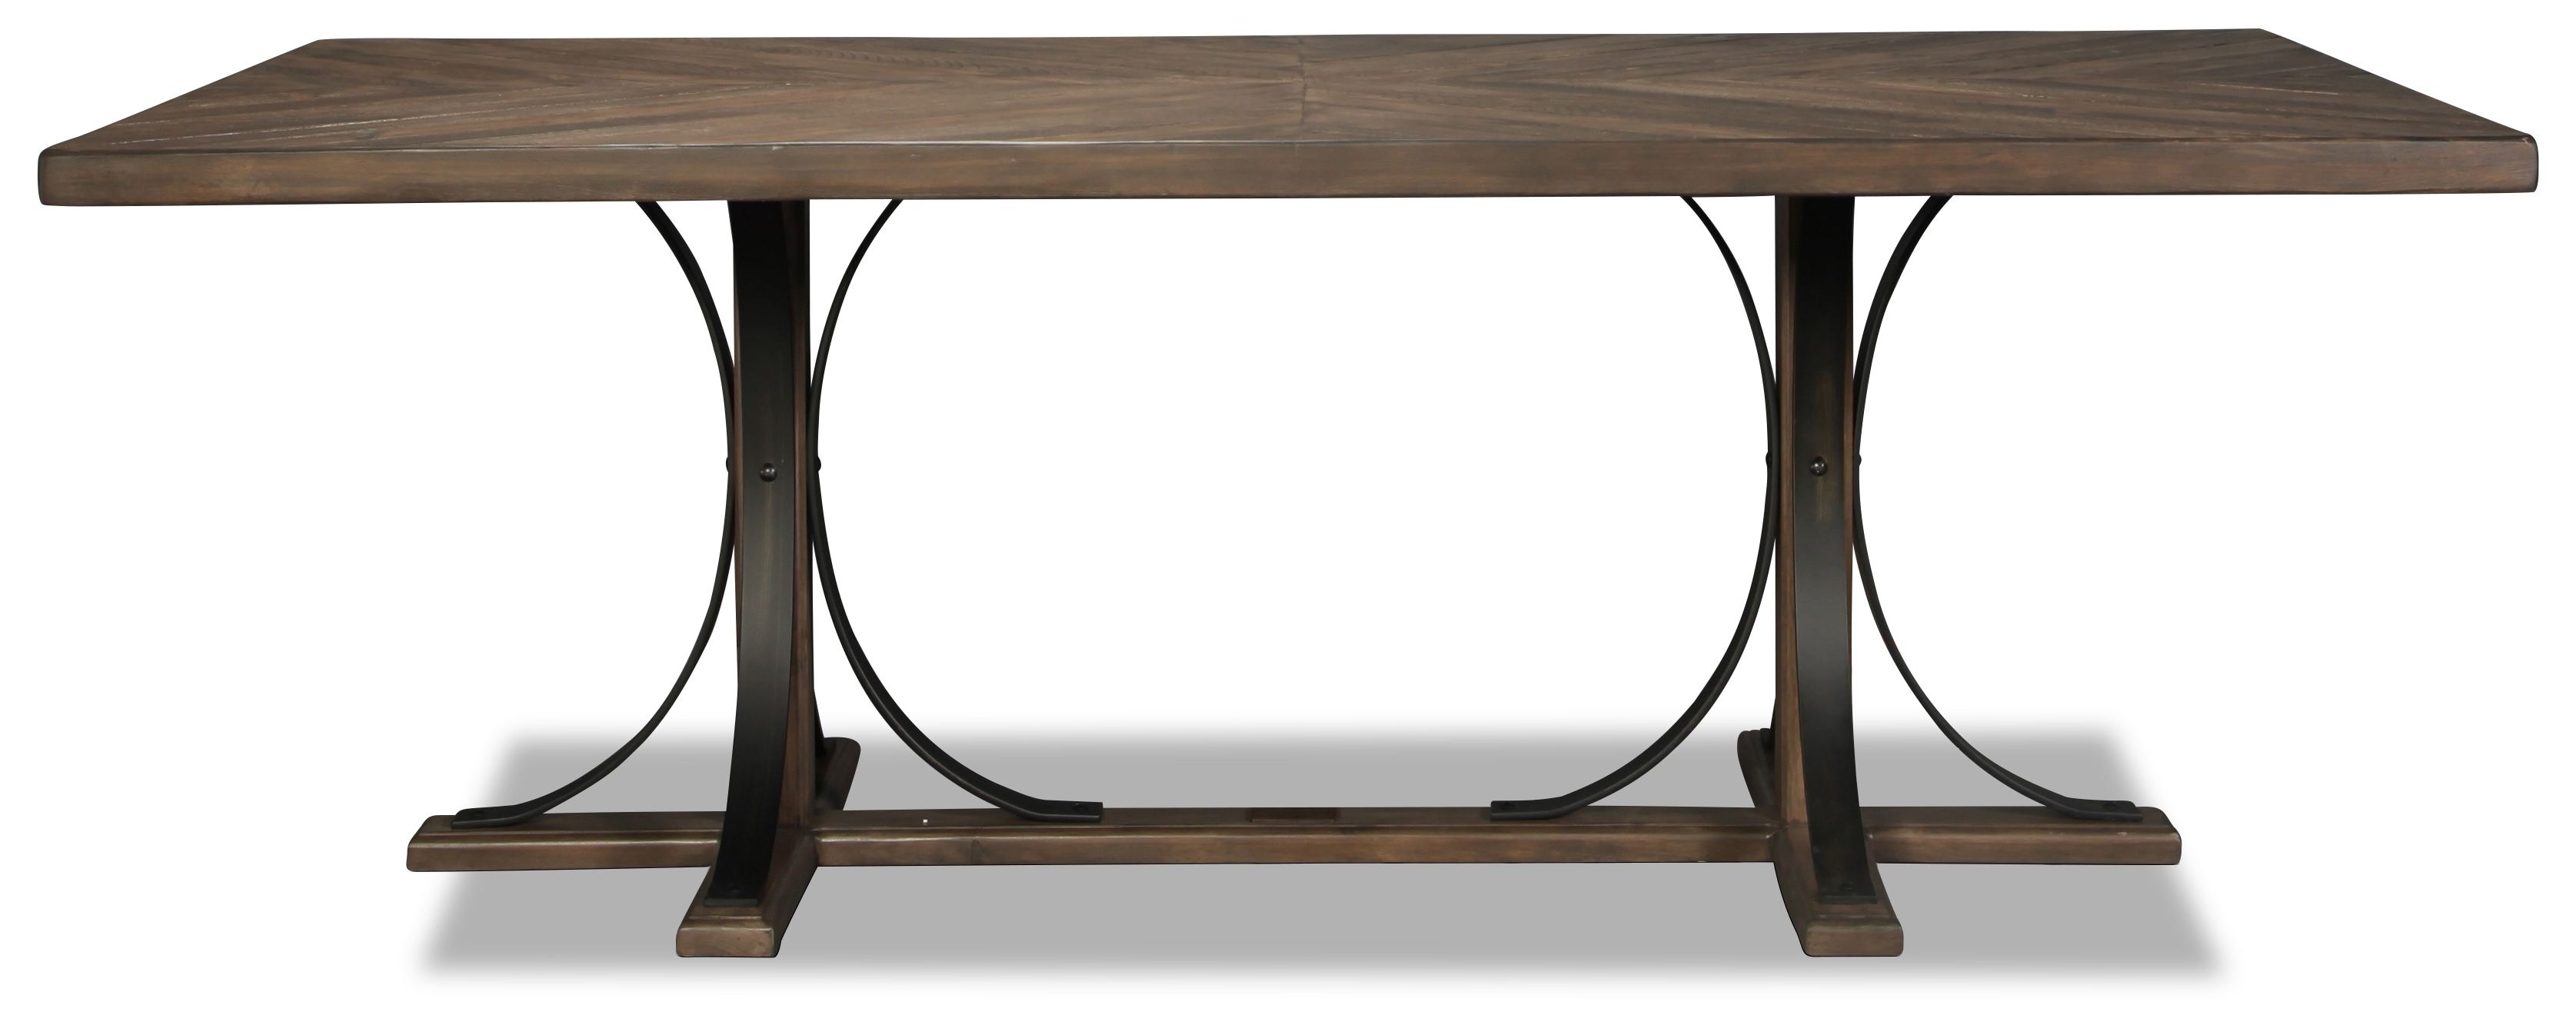 Most Popular Magnolia Home Traditional Iron Trestle Table (View 17 of 25)